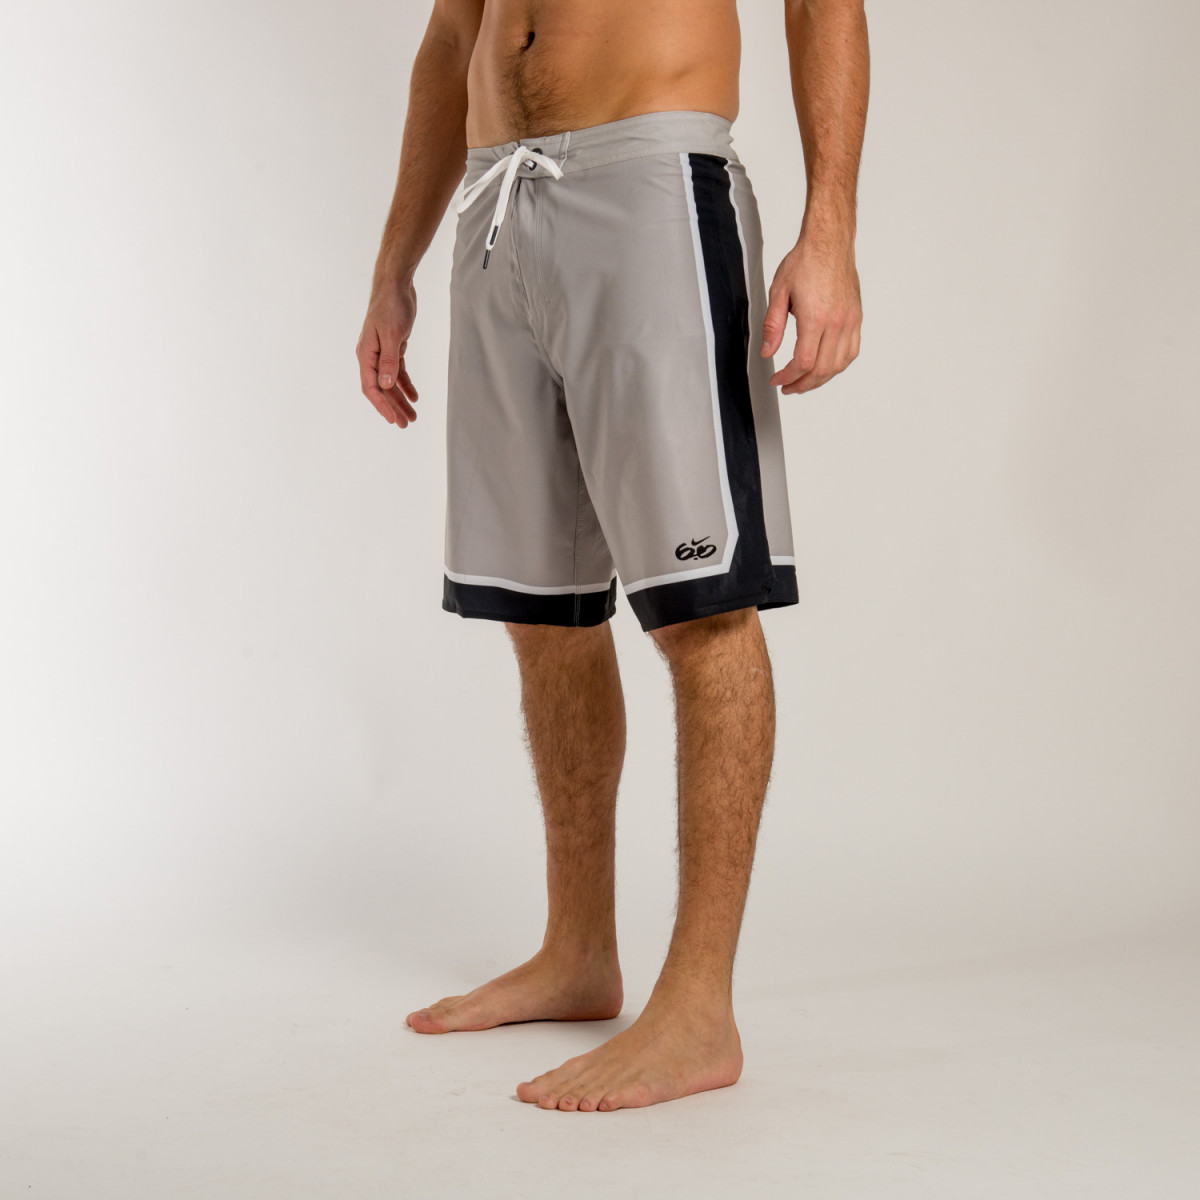 MALLA NIKE 6.0 FULL COURT BOARDSHORT